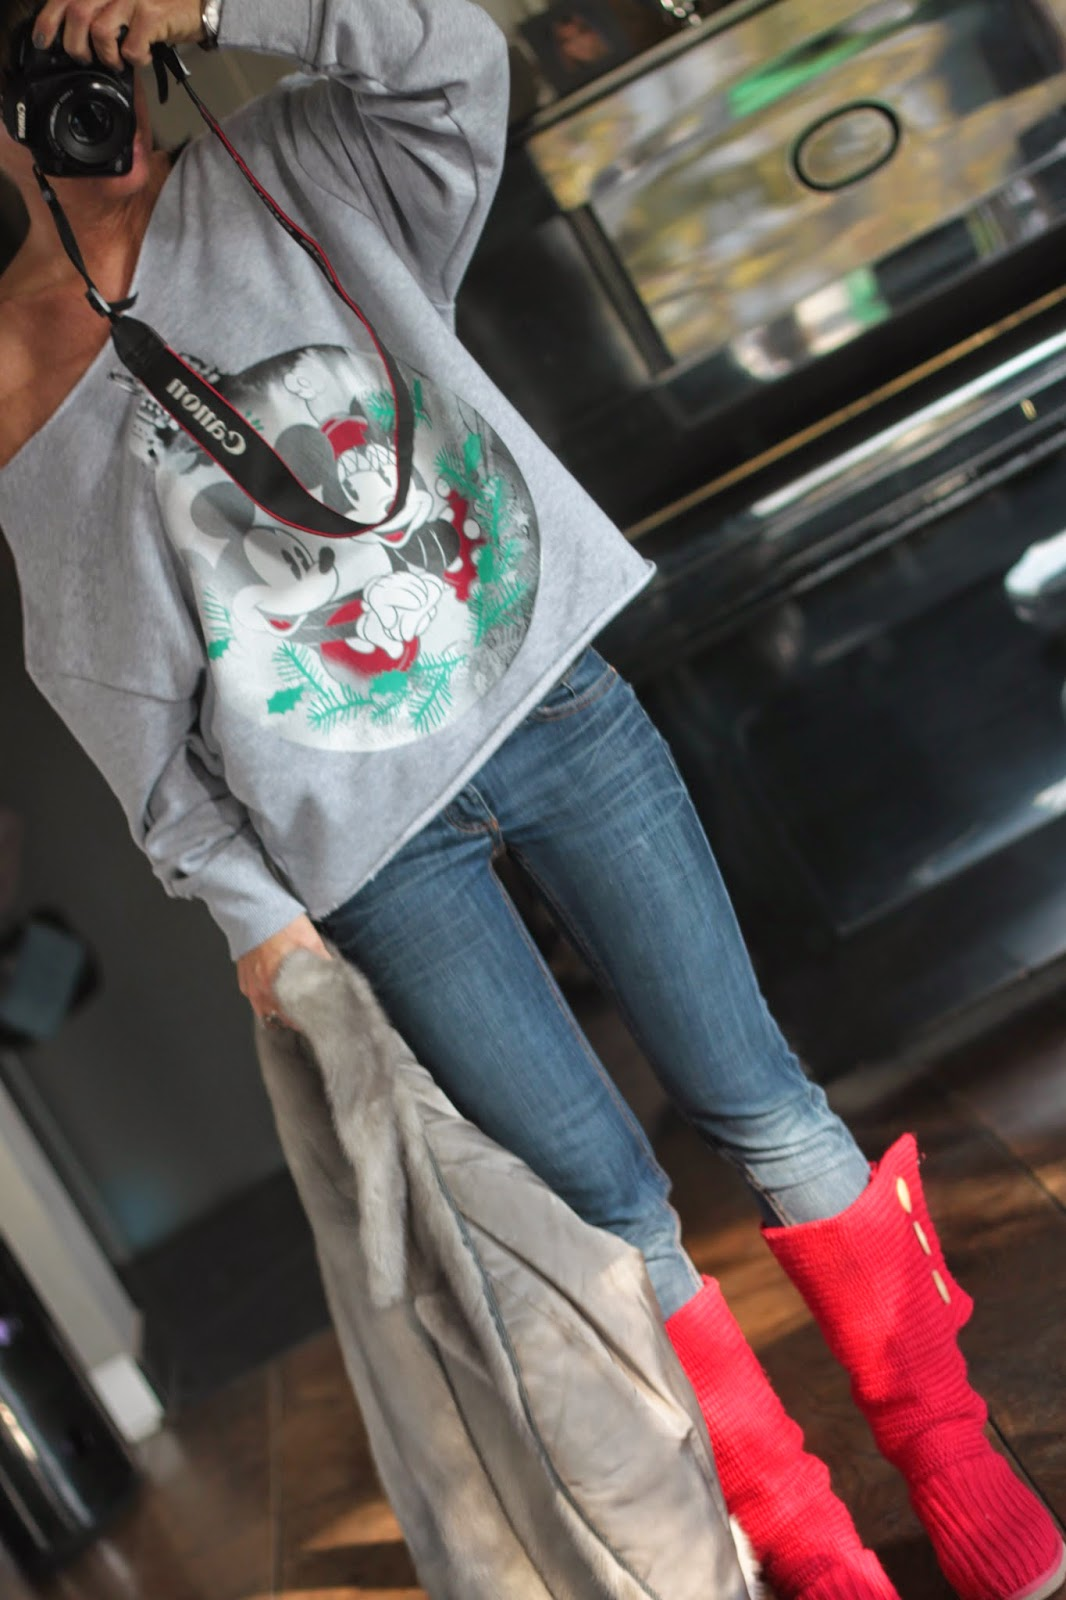 2onyogamats weihnachts sweater rote stiefel. Black Bedroom Furniture Sets. Home Design Ideas